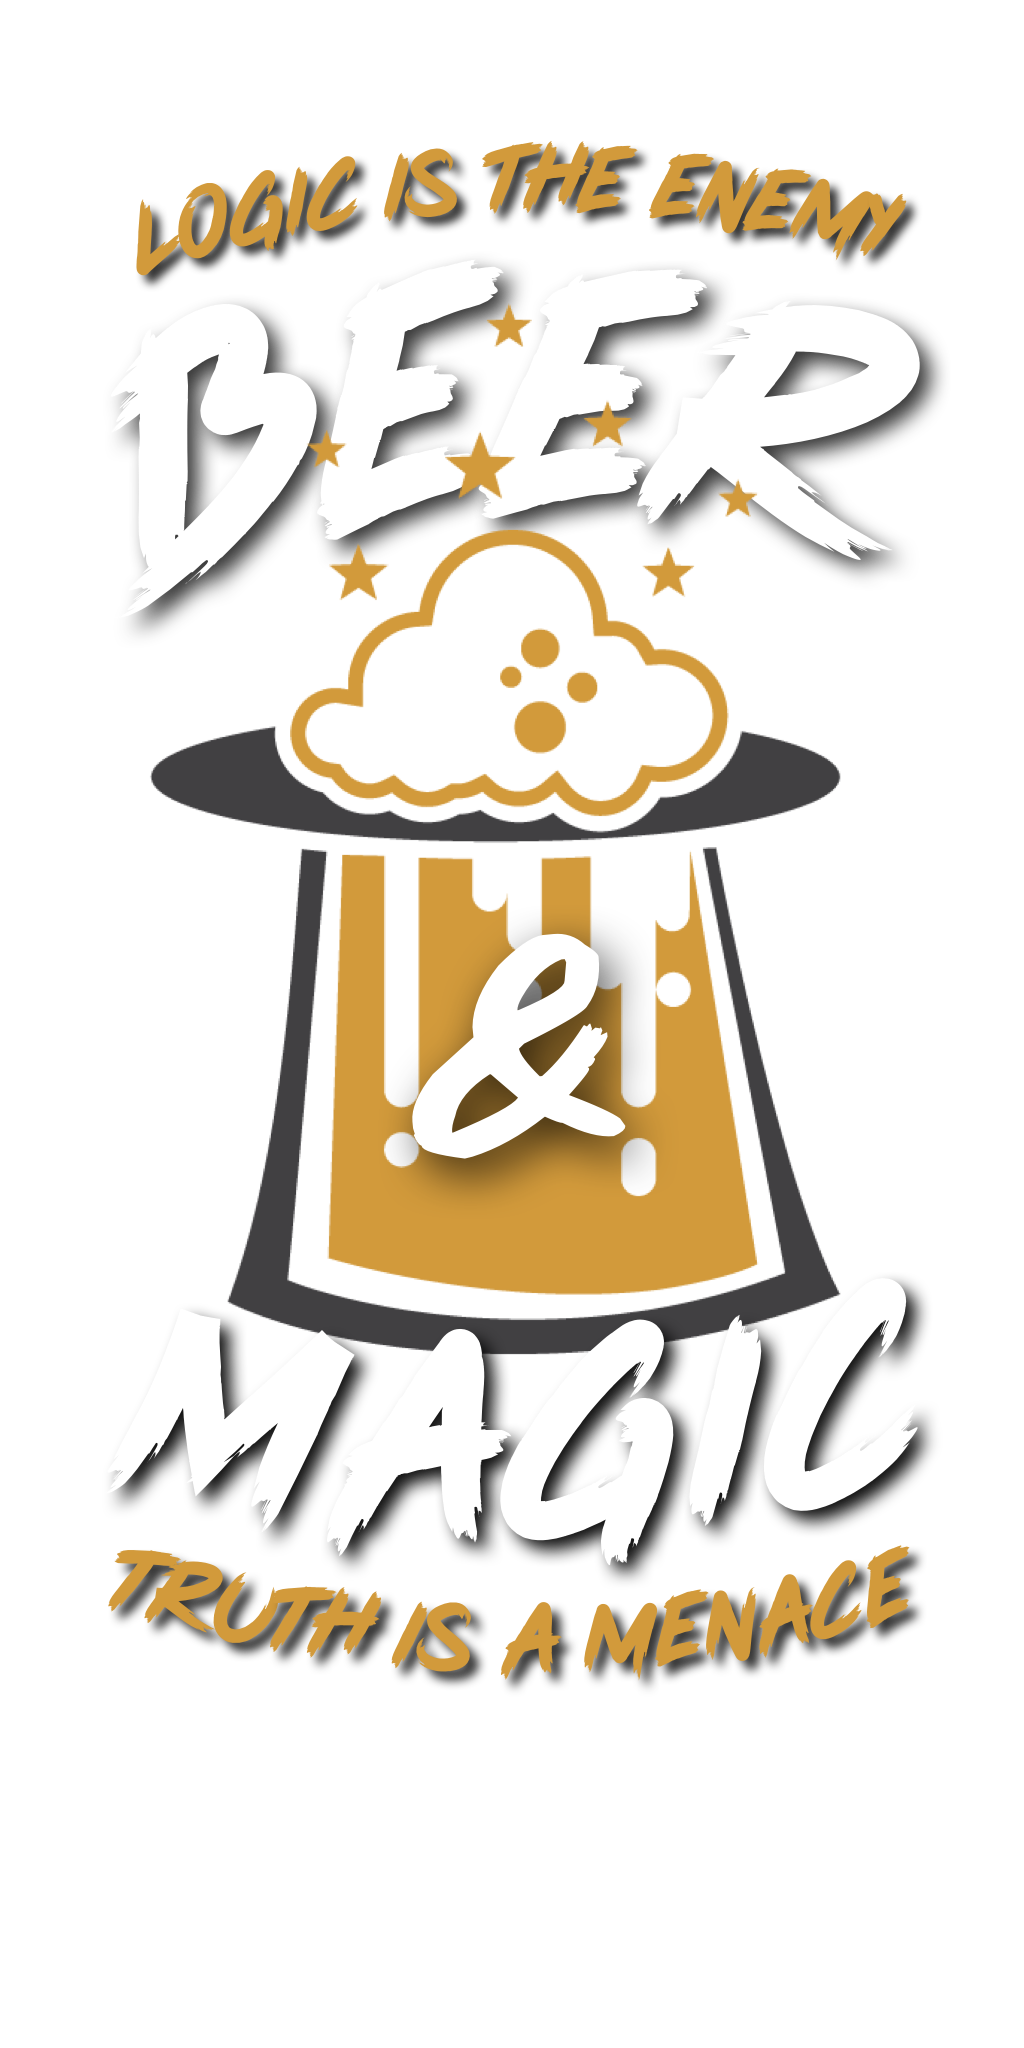 We offer a special experience like no one else. Beer and Magic is a group of award winning Magicians who entertain all over the world. We've been performing at breweries like Golden Road, Angel City, Mt. Lowe, Noble Ale Works, All-American Brew Works and Absolution Brewery to name a few. Close up magic is performed right in front of your eyes and in many cases in your own hands. Magic has never been more popular and we will entertain you in ways you have never experienced and will never forget -